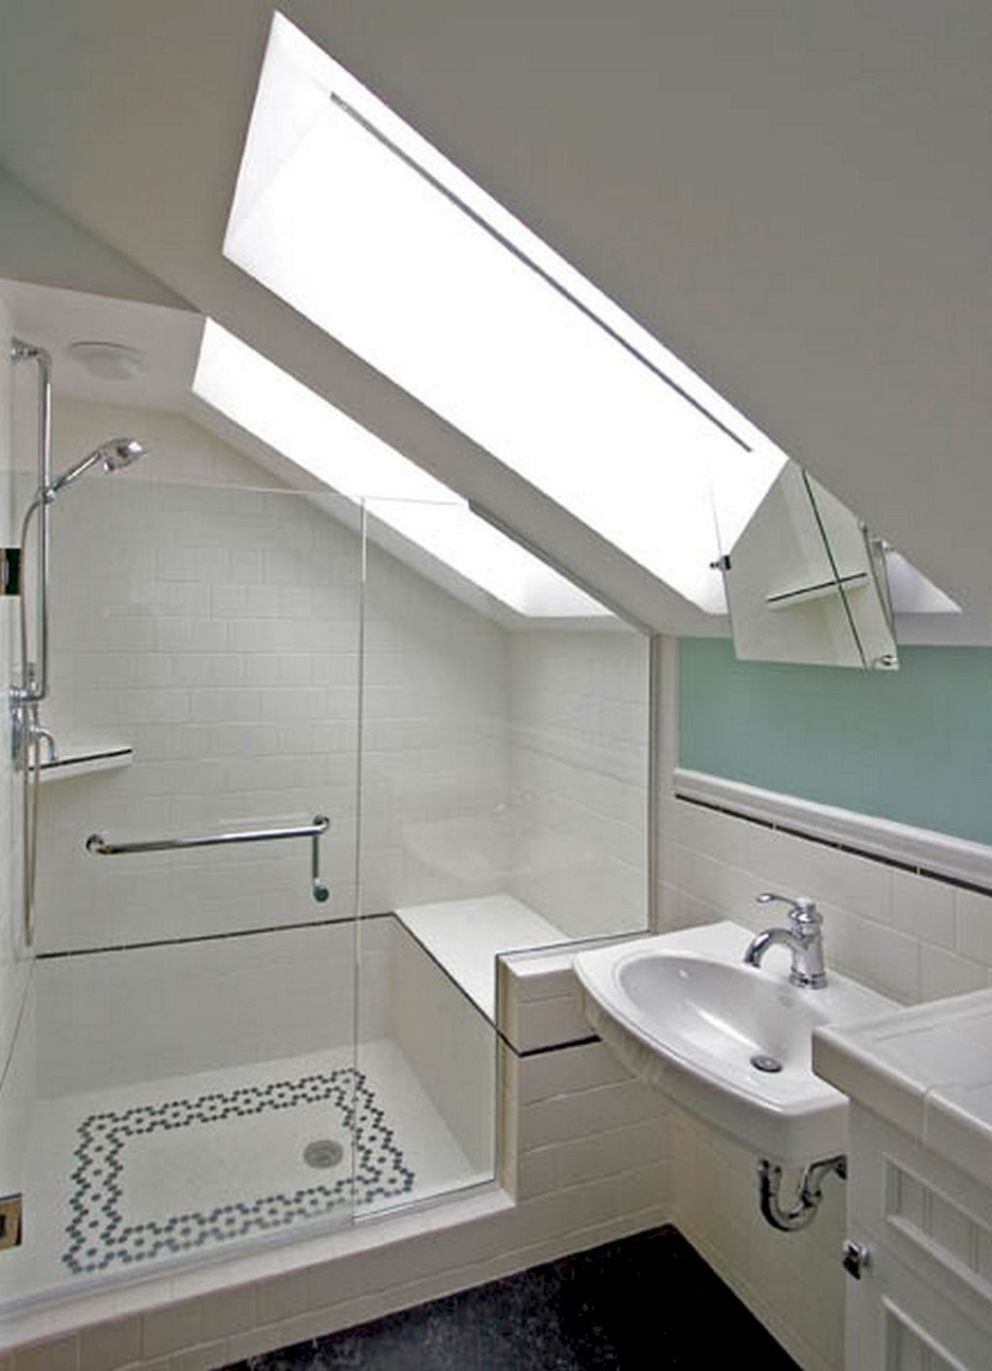 30 Tiny House Bathroom Design Inspirations 5b55f3a63e1da Small Attic Bathroom Tiny House Bathroom House Bathroom Designs